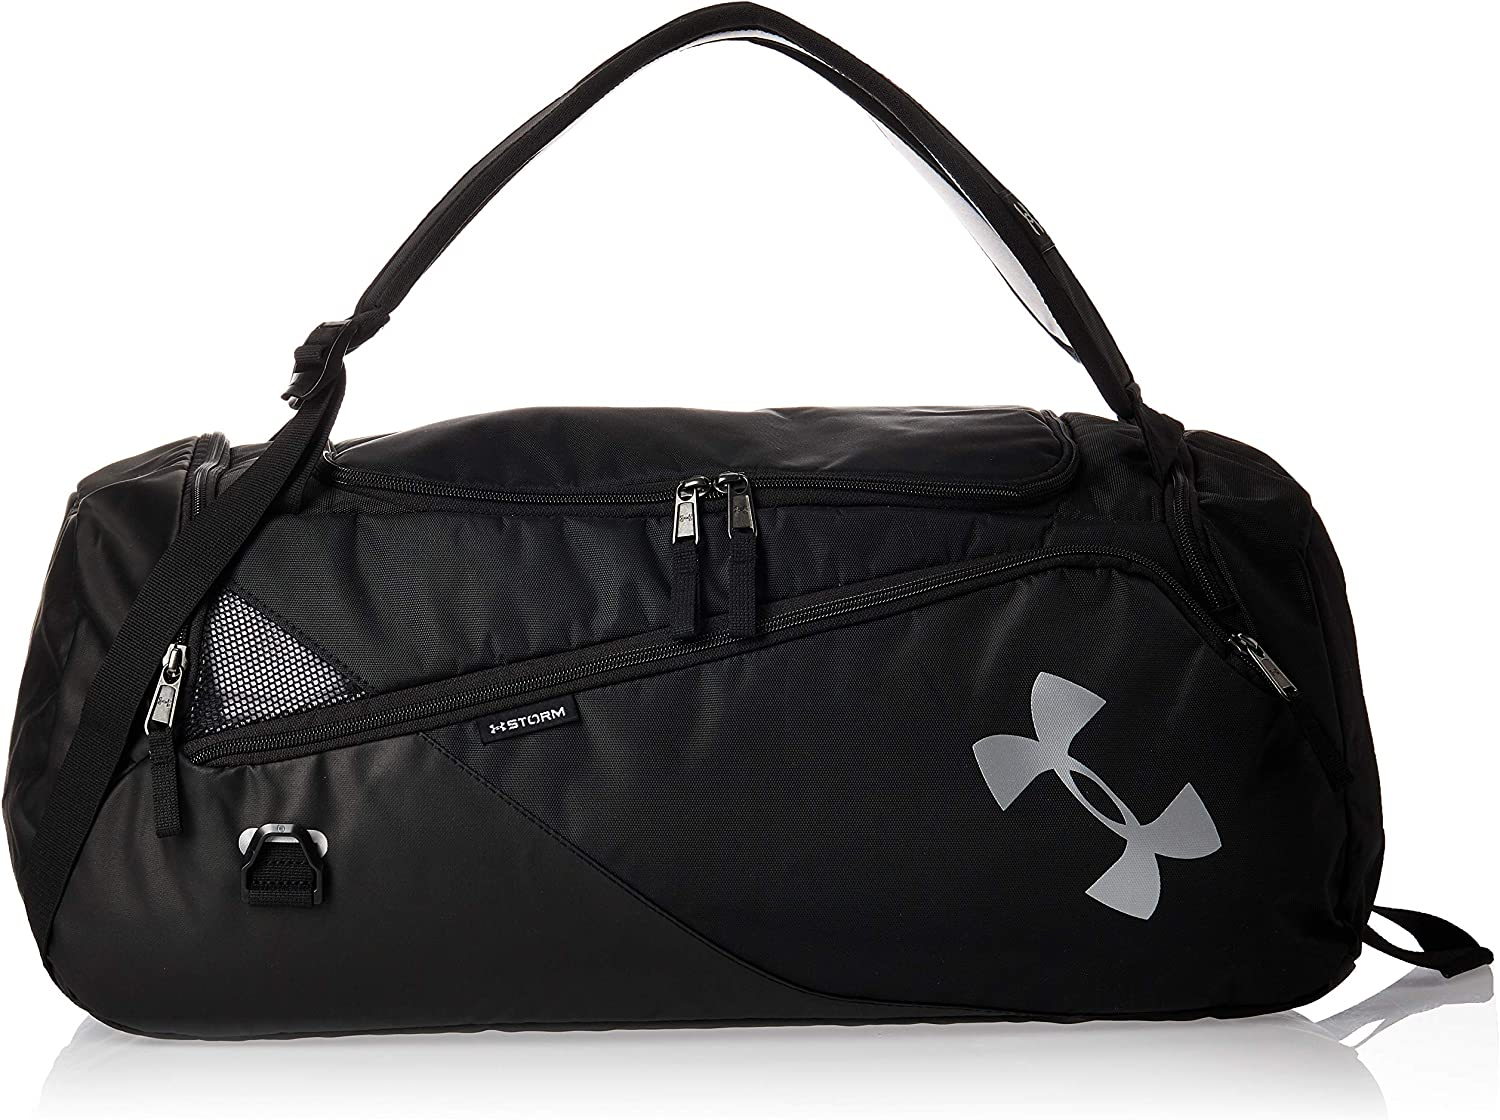 Under Armour Unisex-Adult Contain Duo 2 Duffle Bag